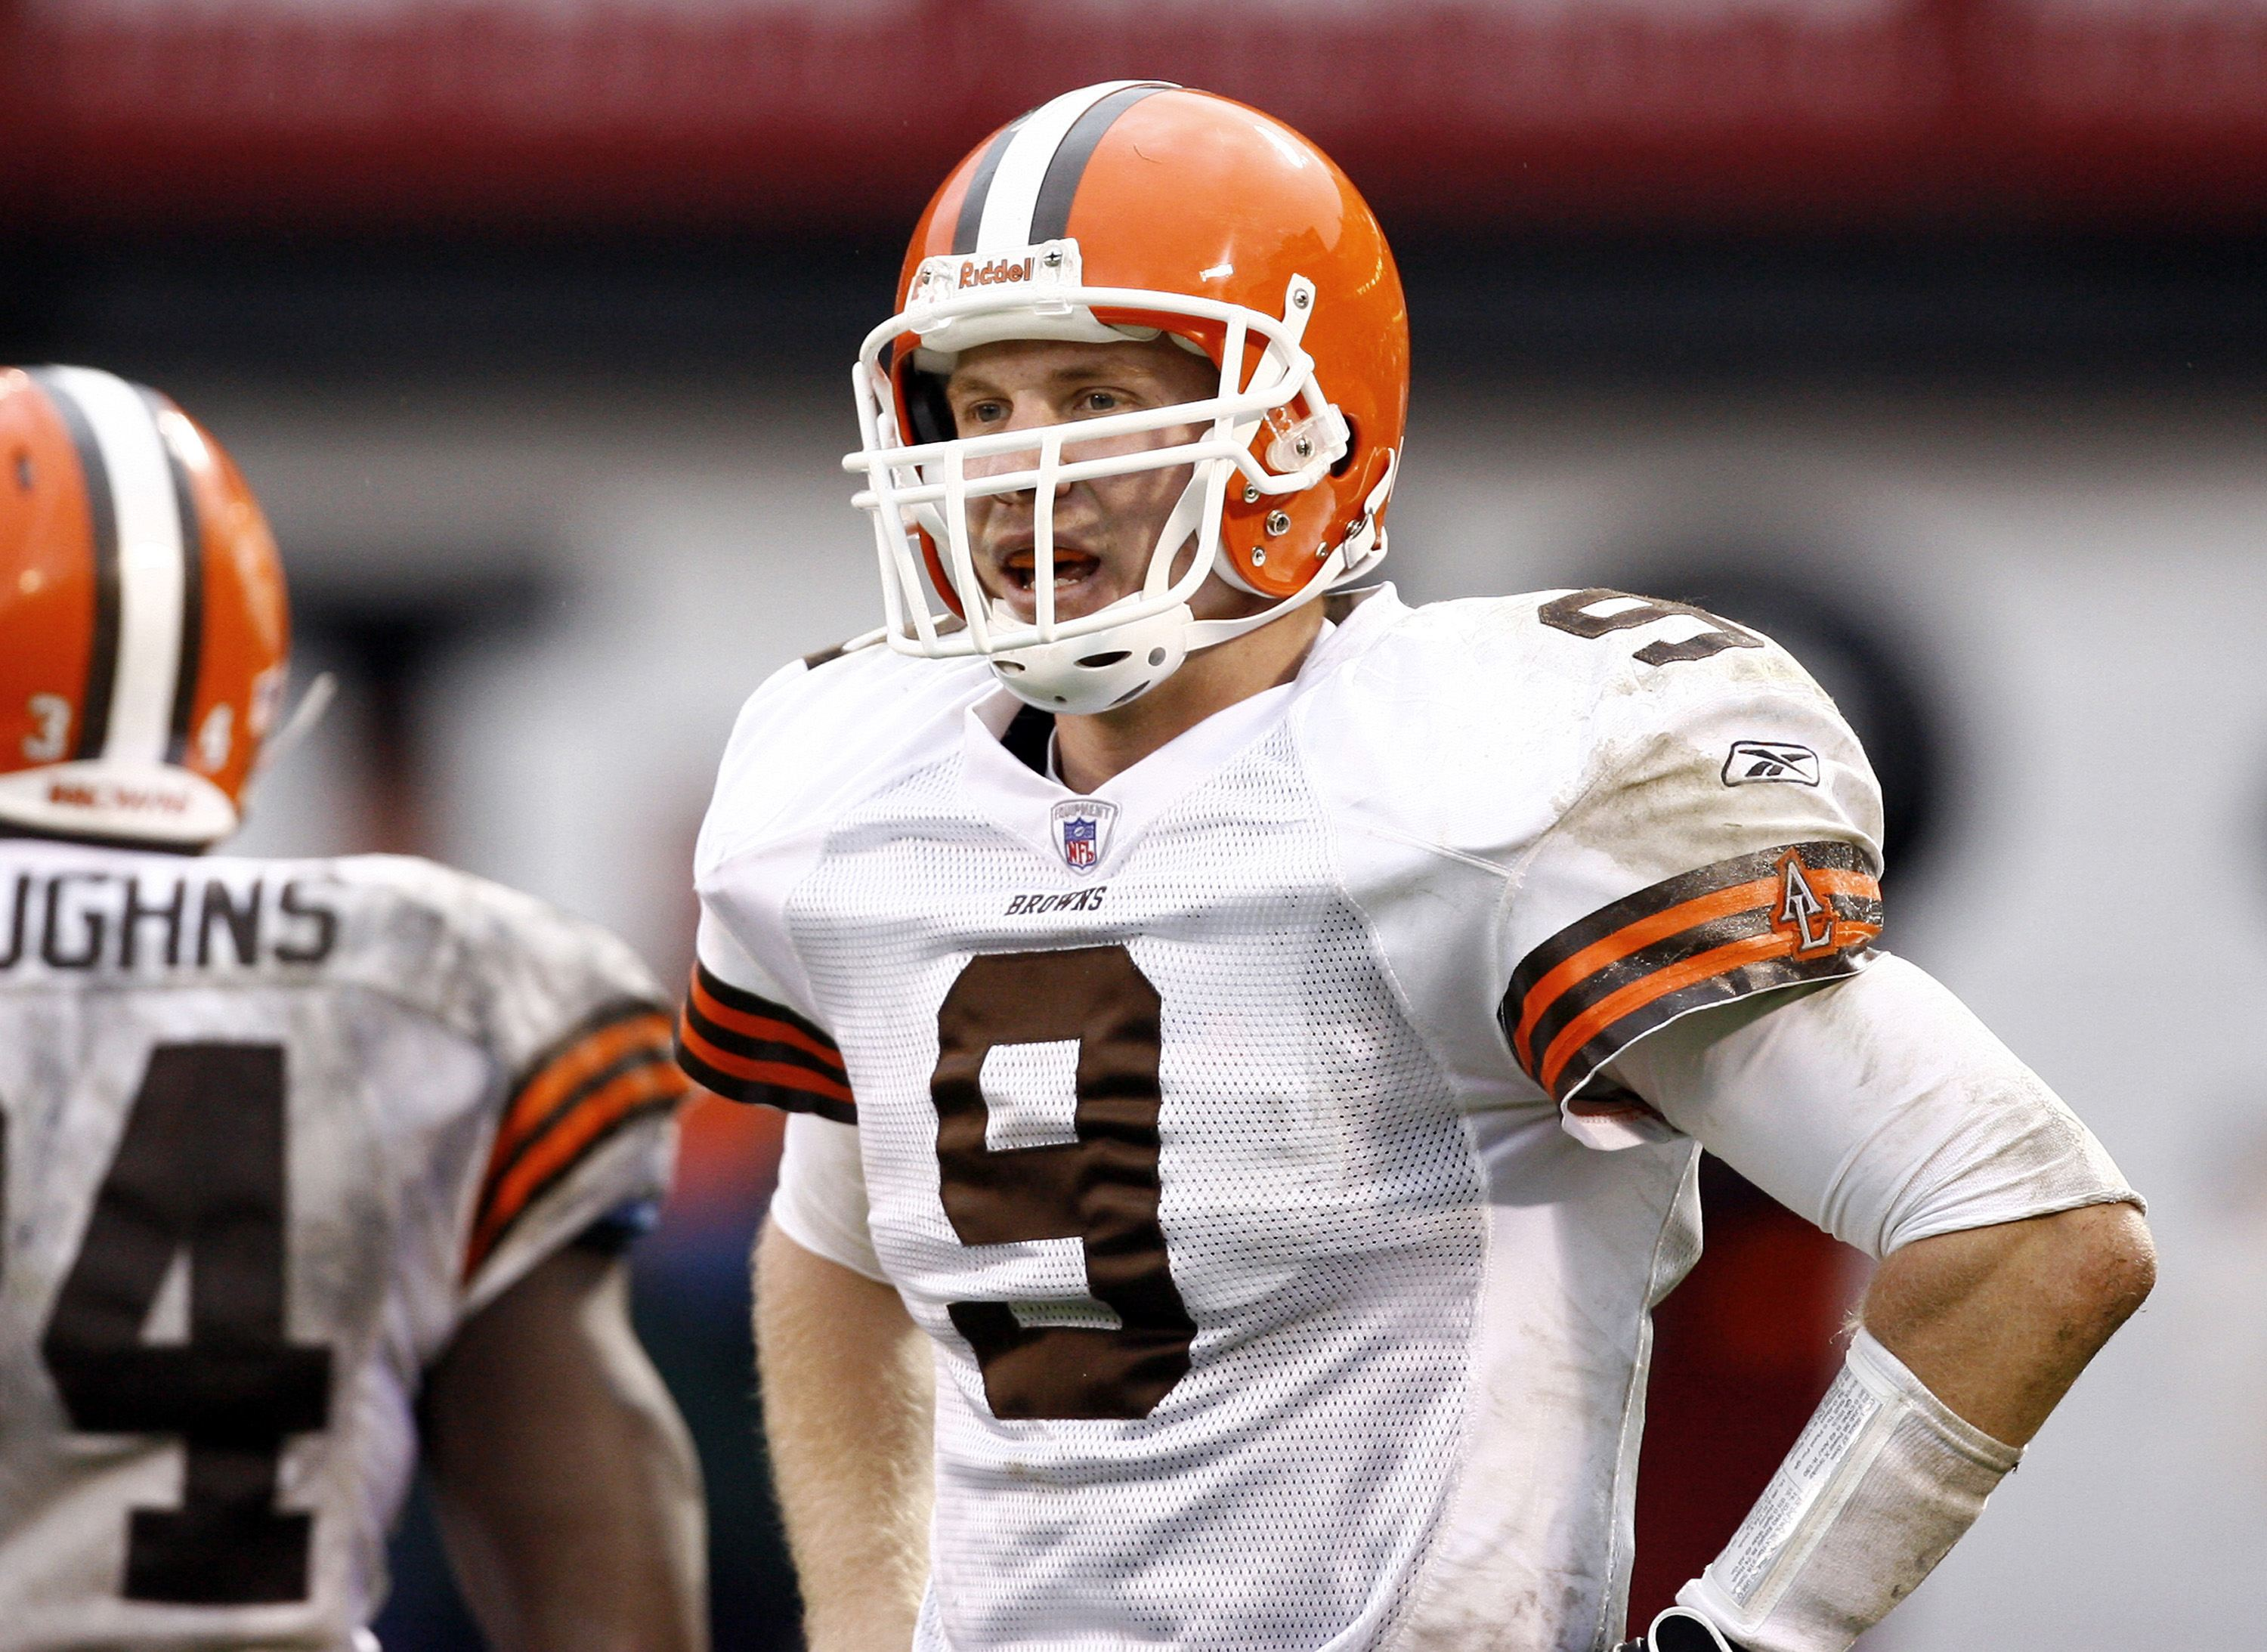 Cleveland Browns rookie quarterback Charlie Frye threw for 198 yards and won his first NFL game with the Cleveland Browns.